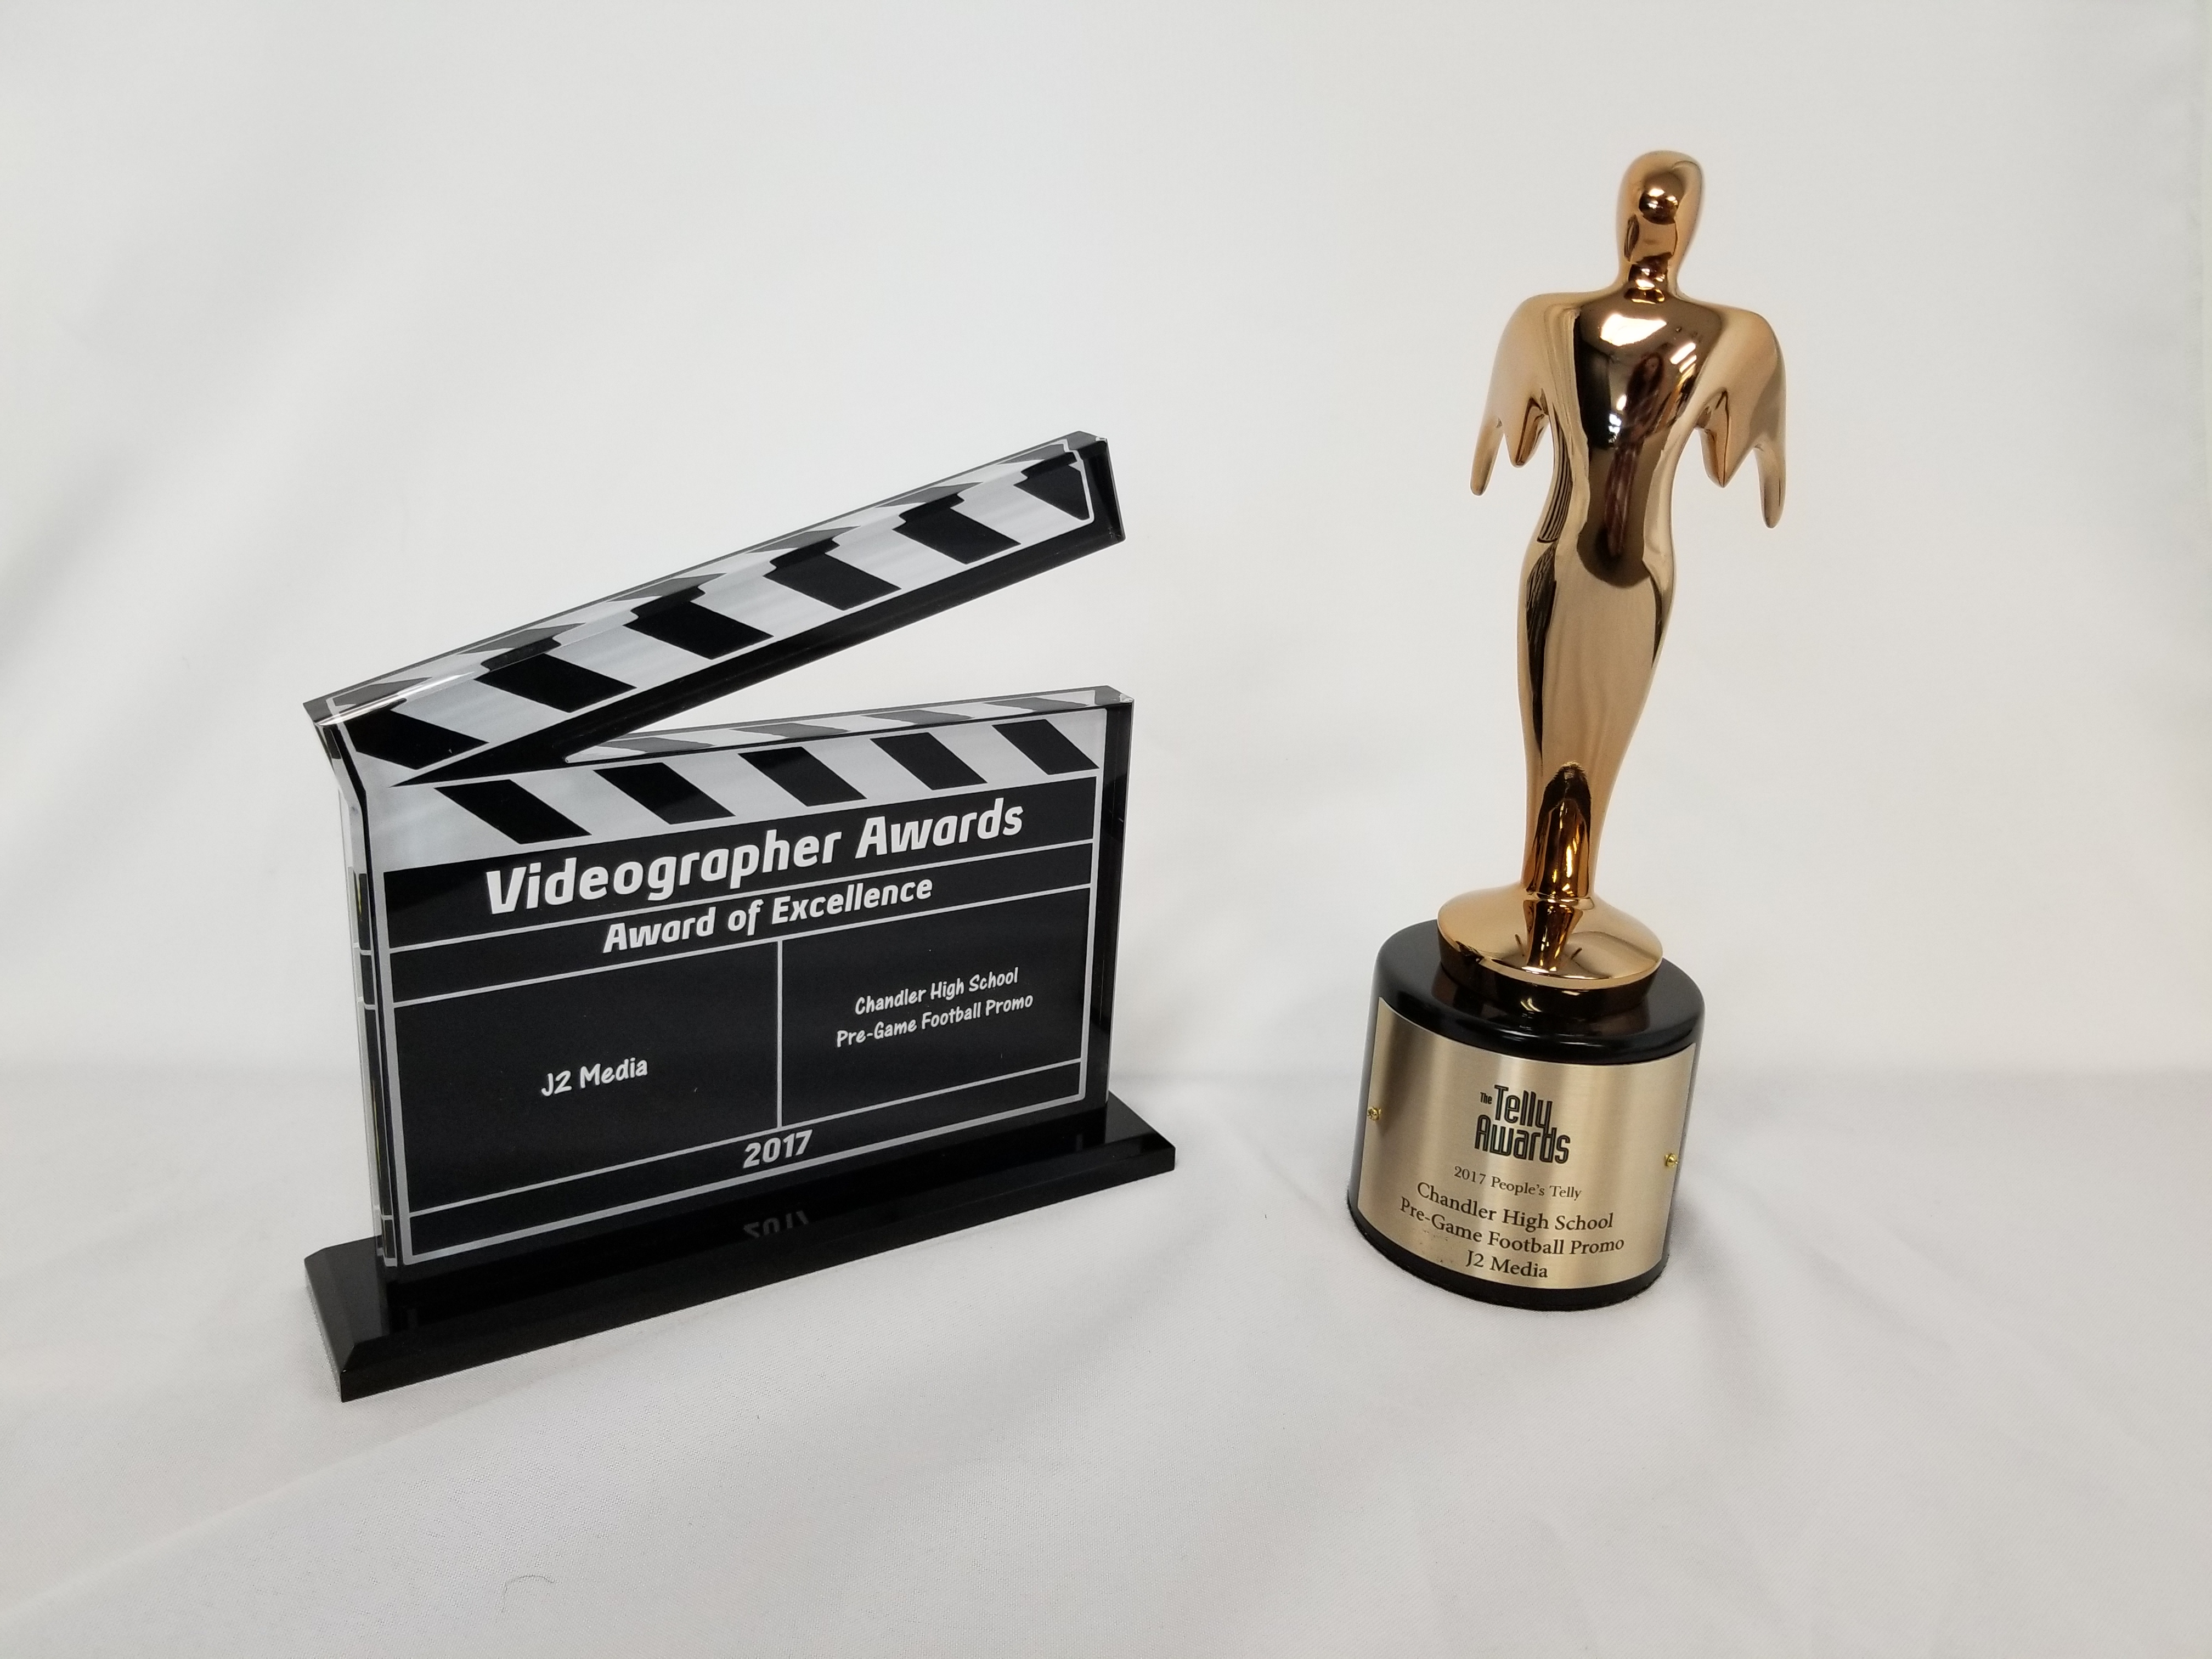 J2 Media Wins People's Telly and Videographer Award